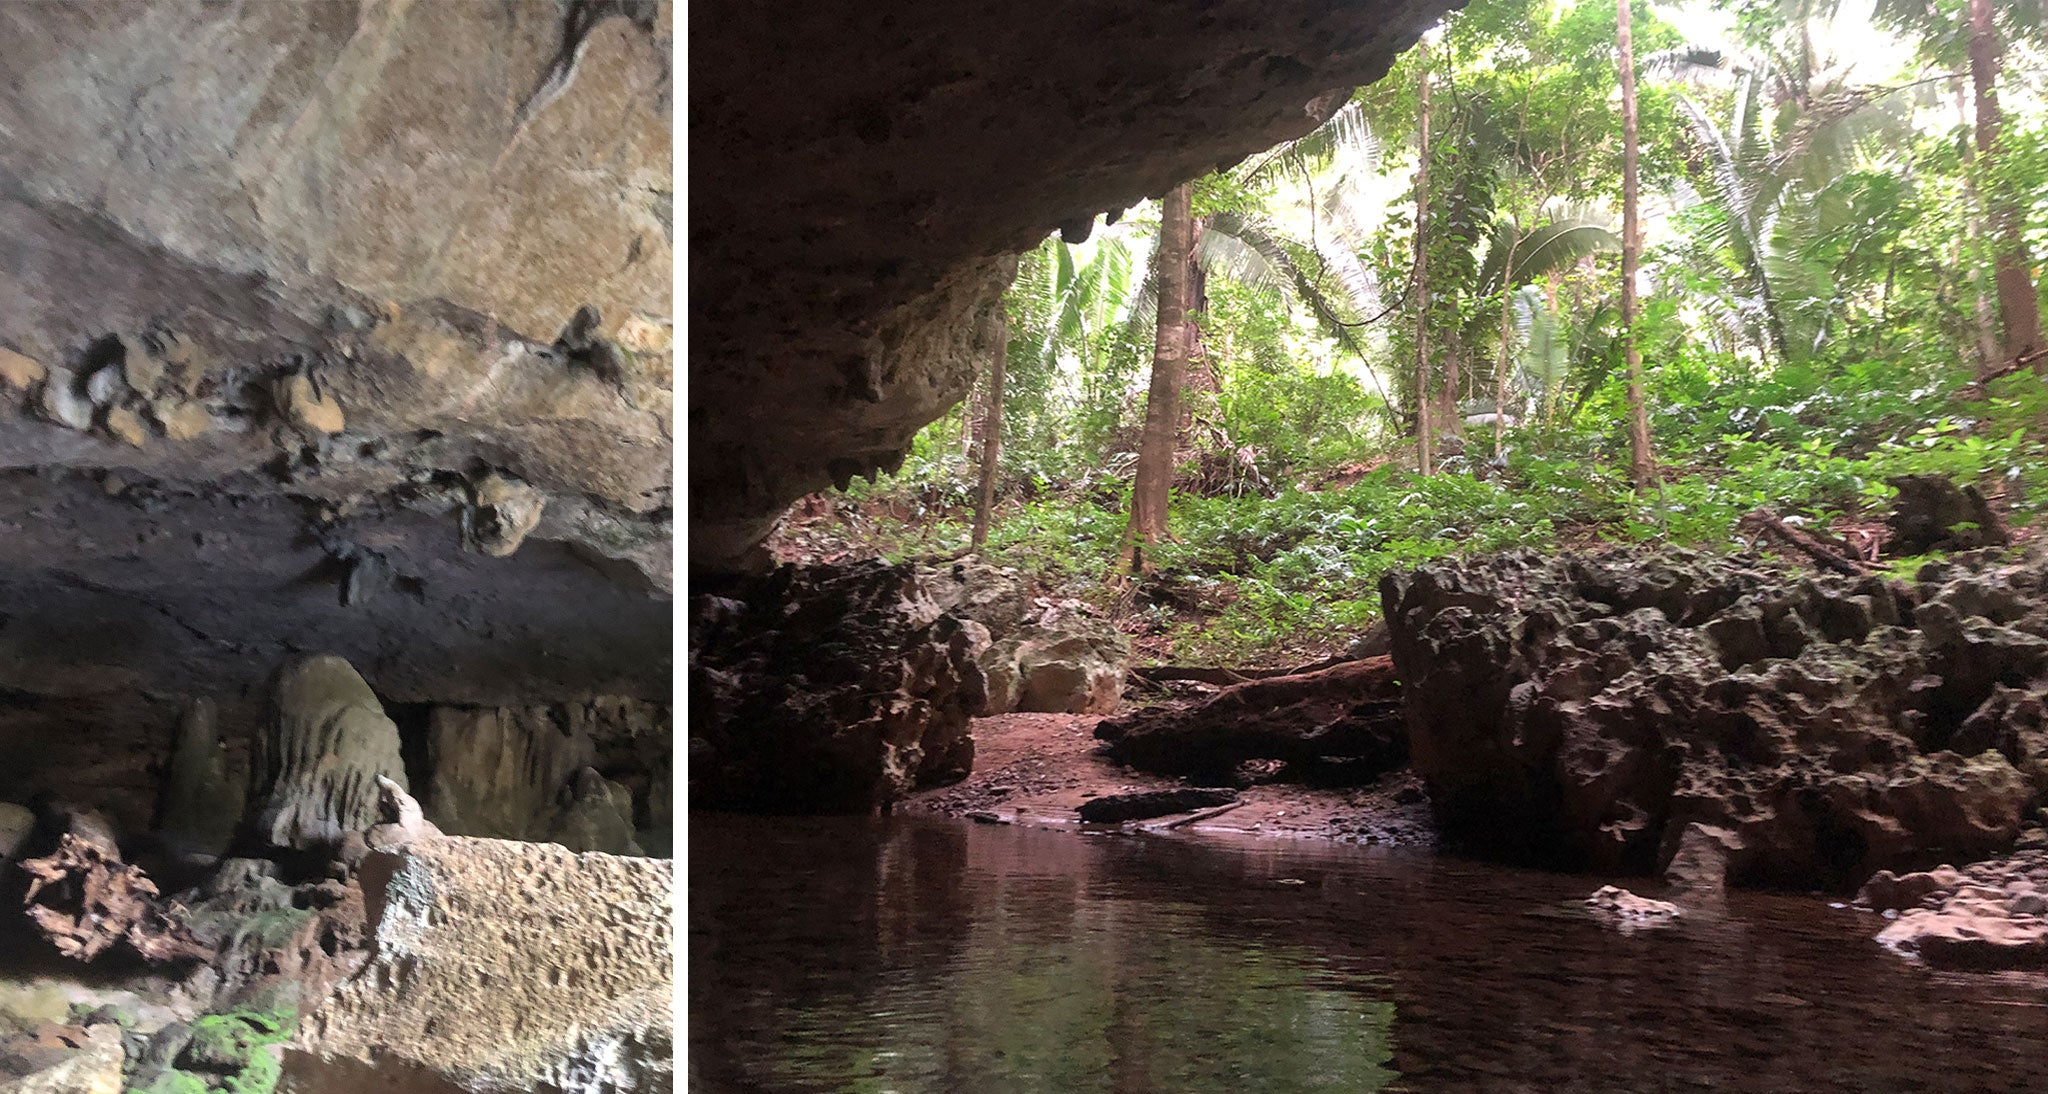 Packrafting Belize: Caves, Waterfalls and Remote Jungle Paddling in the Land of the Maya